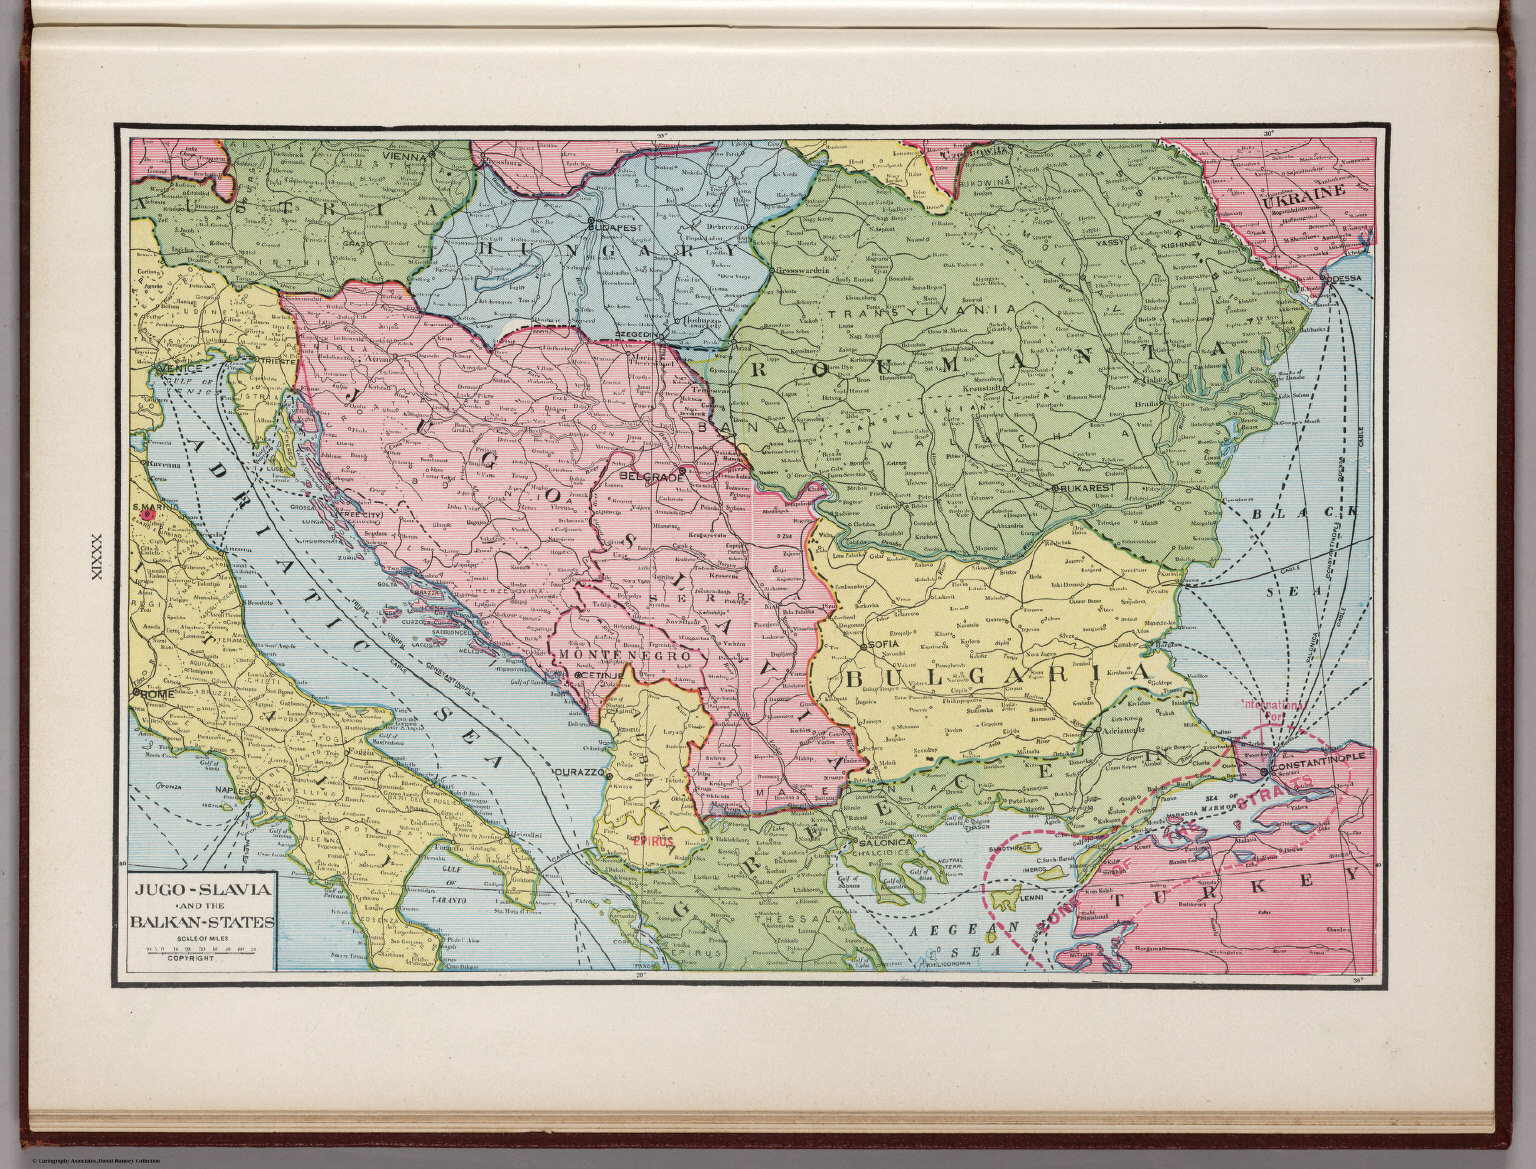 Balkanmaps in addition Balkan Order Looking Shaky   Geworld in addition Former Yugoslavia Maps   Perry Castañeda Map Collection   UT Liry additionally MAPS furthermore Map of the Western Balkan region with triangles corresponding to the likewise Map of The Balkans  Snia  Croatia  Bosnia  Serbia  Macedonia as well History  Balkan Region Maps   YouTube moreover BALKAN STATES Illustrating WW1 Peace Terms Vintage Map 1926 by together with  besides Amazon    World Atlas Map  52  Balkanstaaten  Balkan States  1925 further Large detailed political map of the Balkan States   Balkans   Europe as well Which Countries Are Part of the Balkan States besides Political map of balkans   states of balkan peninsula  four shades also Balkans Map Balkans Central Europe Balkan States 1950s 1953   Etsy additionally  together with . on map of the balkan states